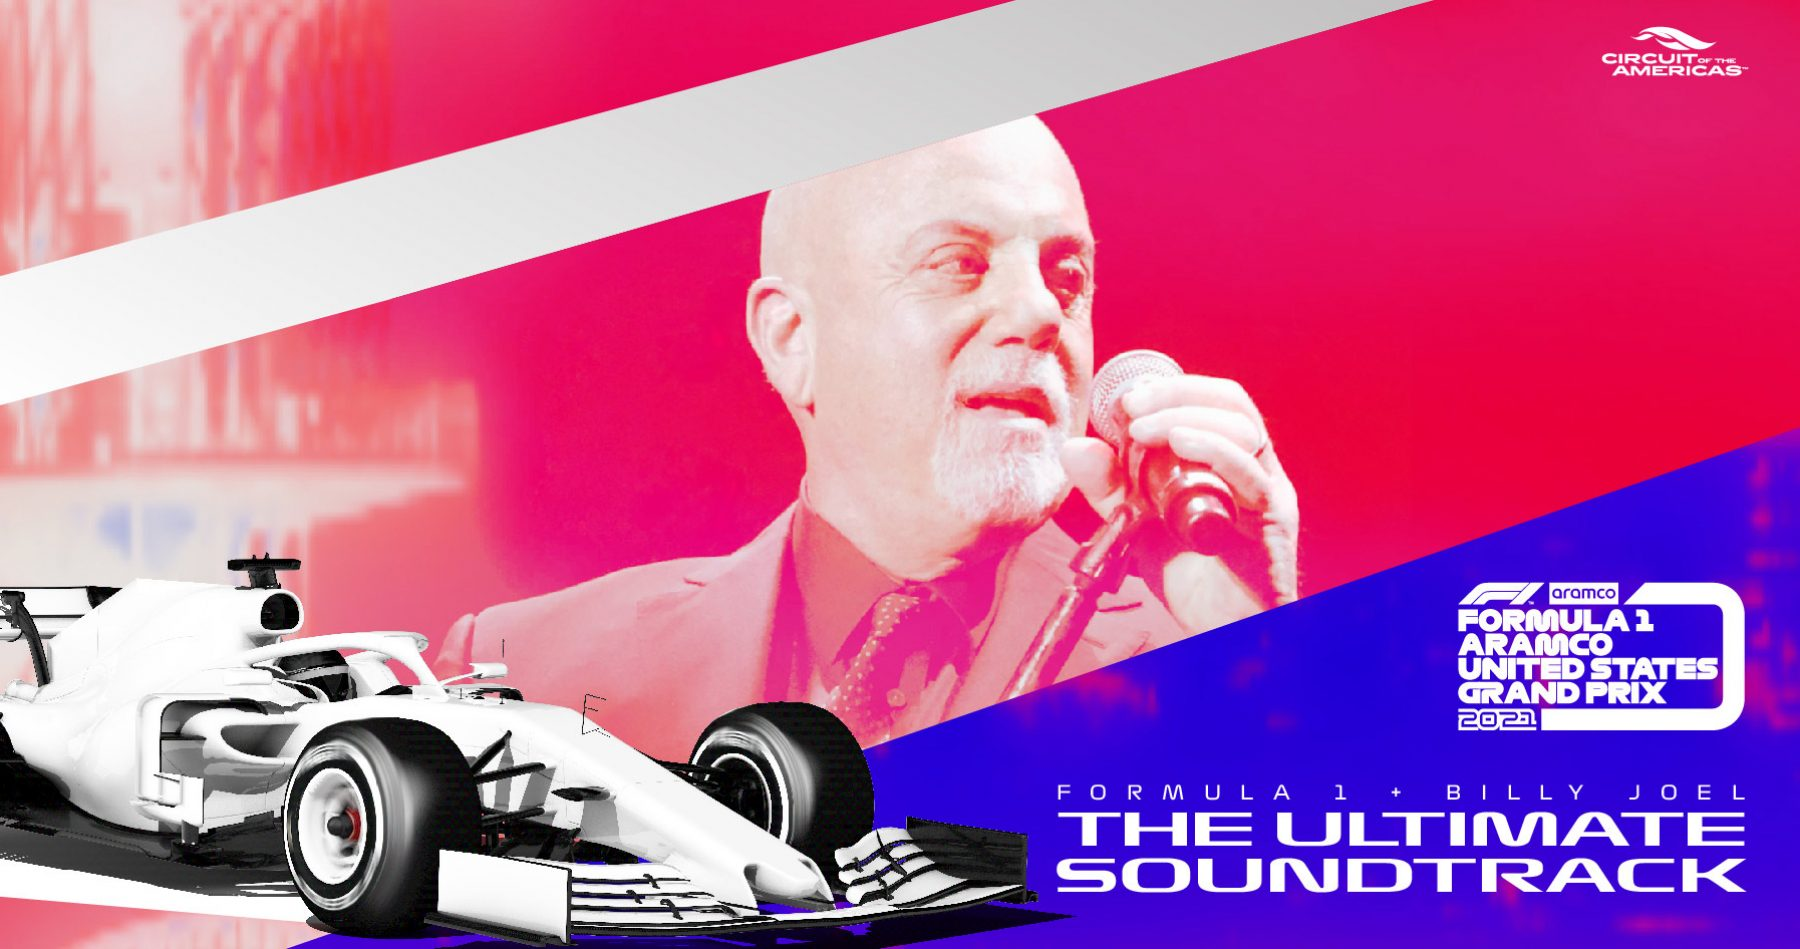 Billy Joel concert at Germania Insurance Super Stage in Austin, TX on October 23, 2021